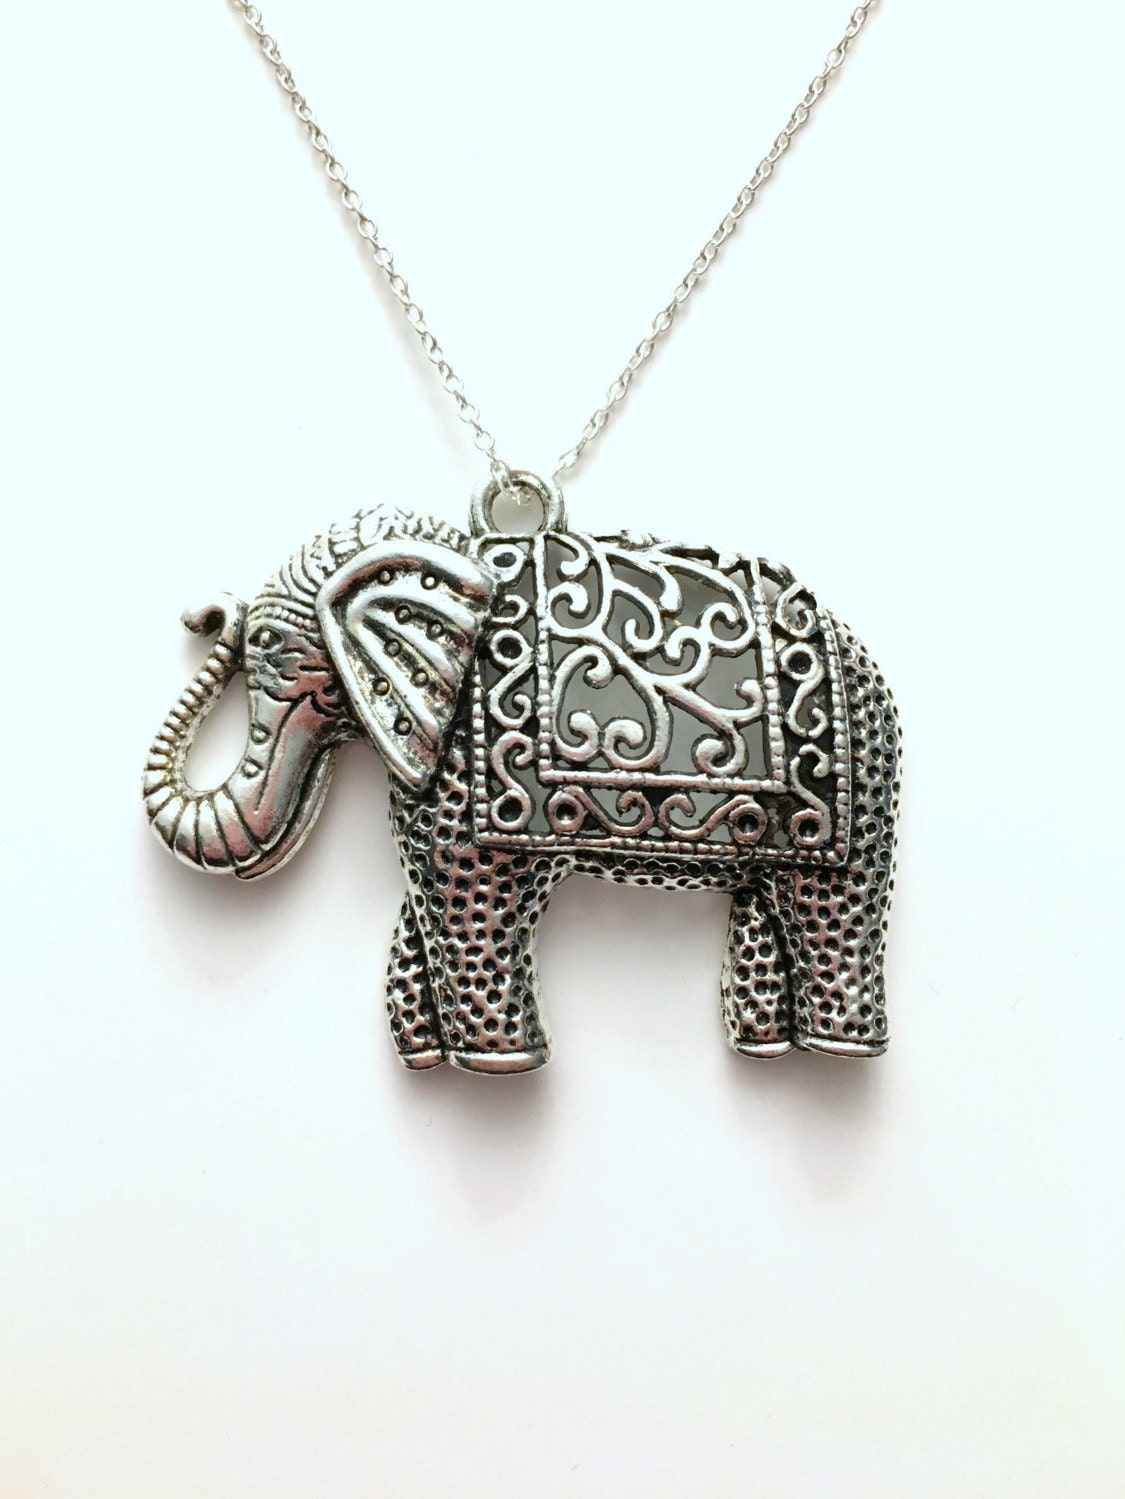 gold silver large jean sales good claude jewelry luck necklace elephant